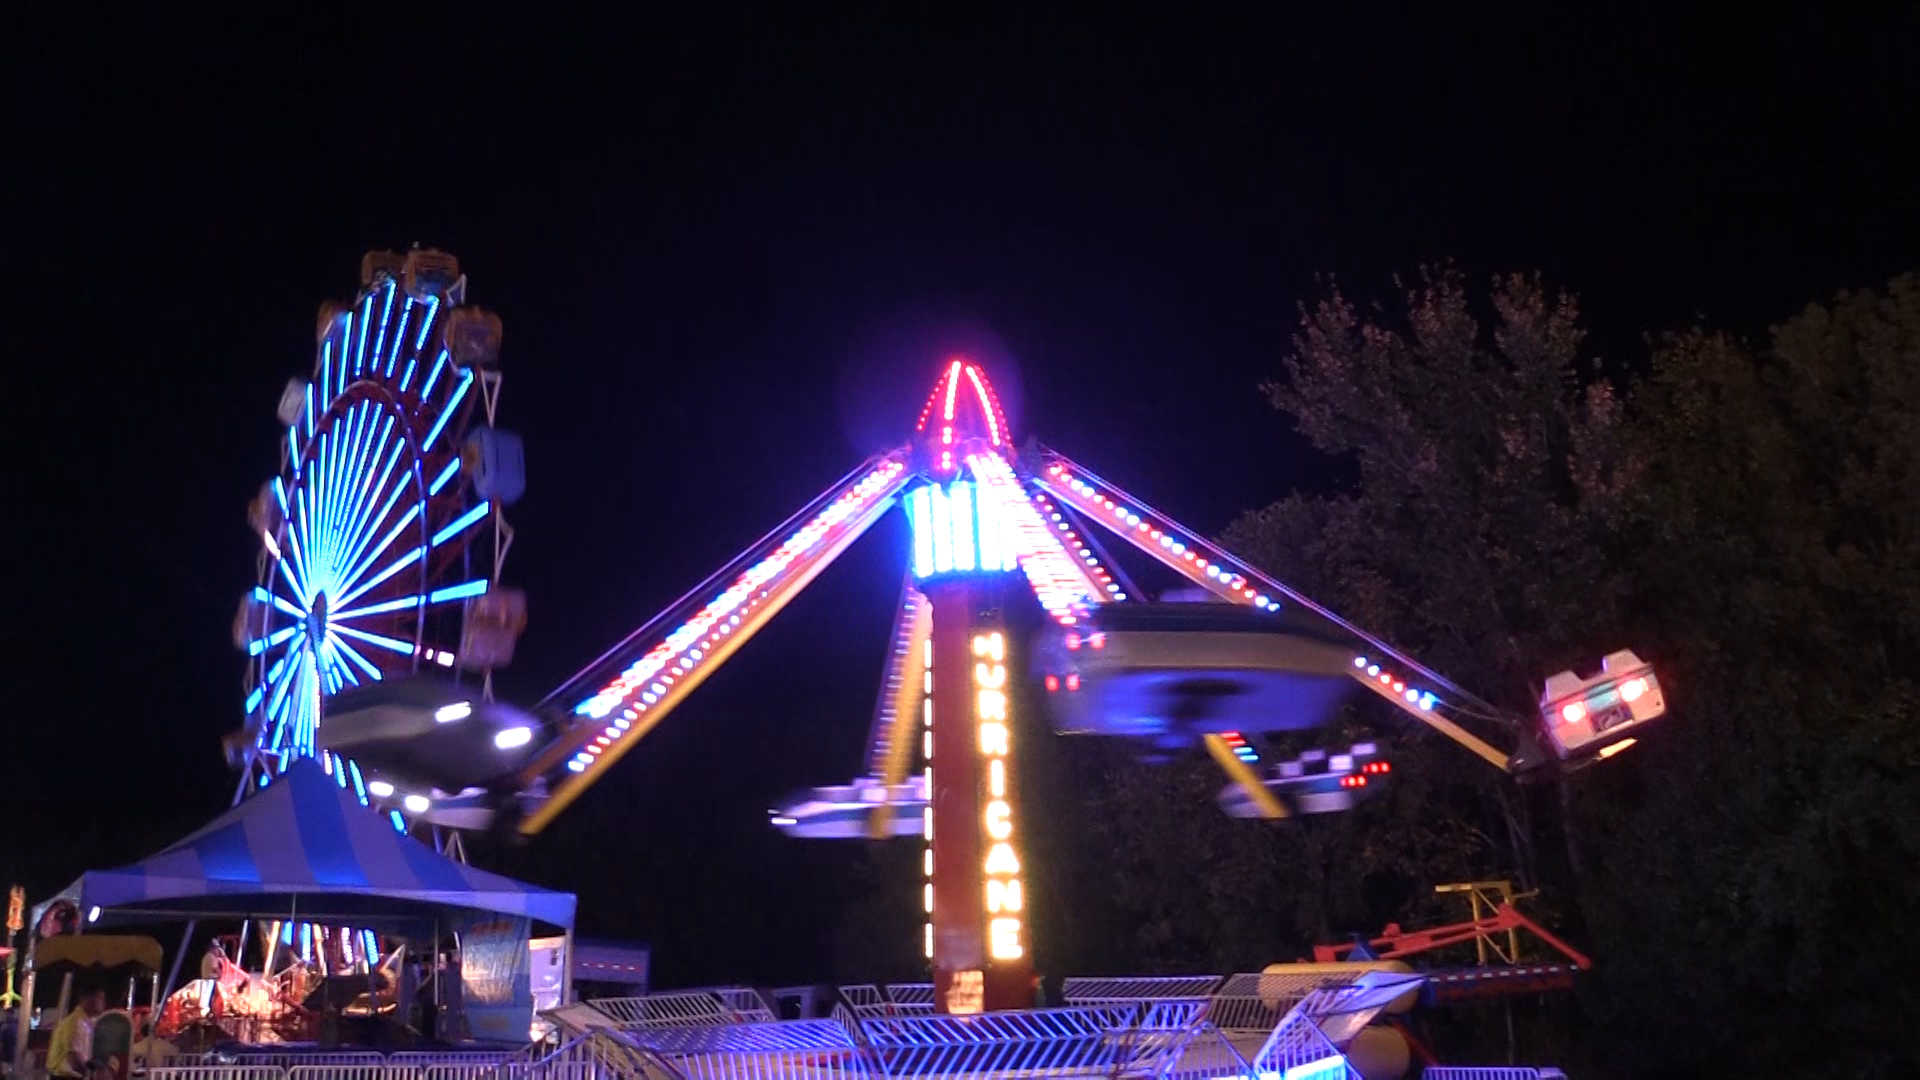 VIDEO - Taking a lap around the Midway